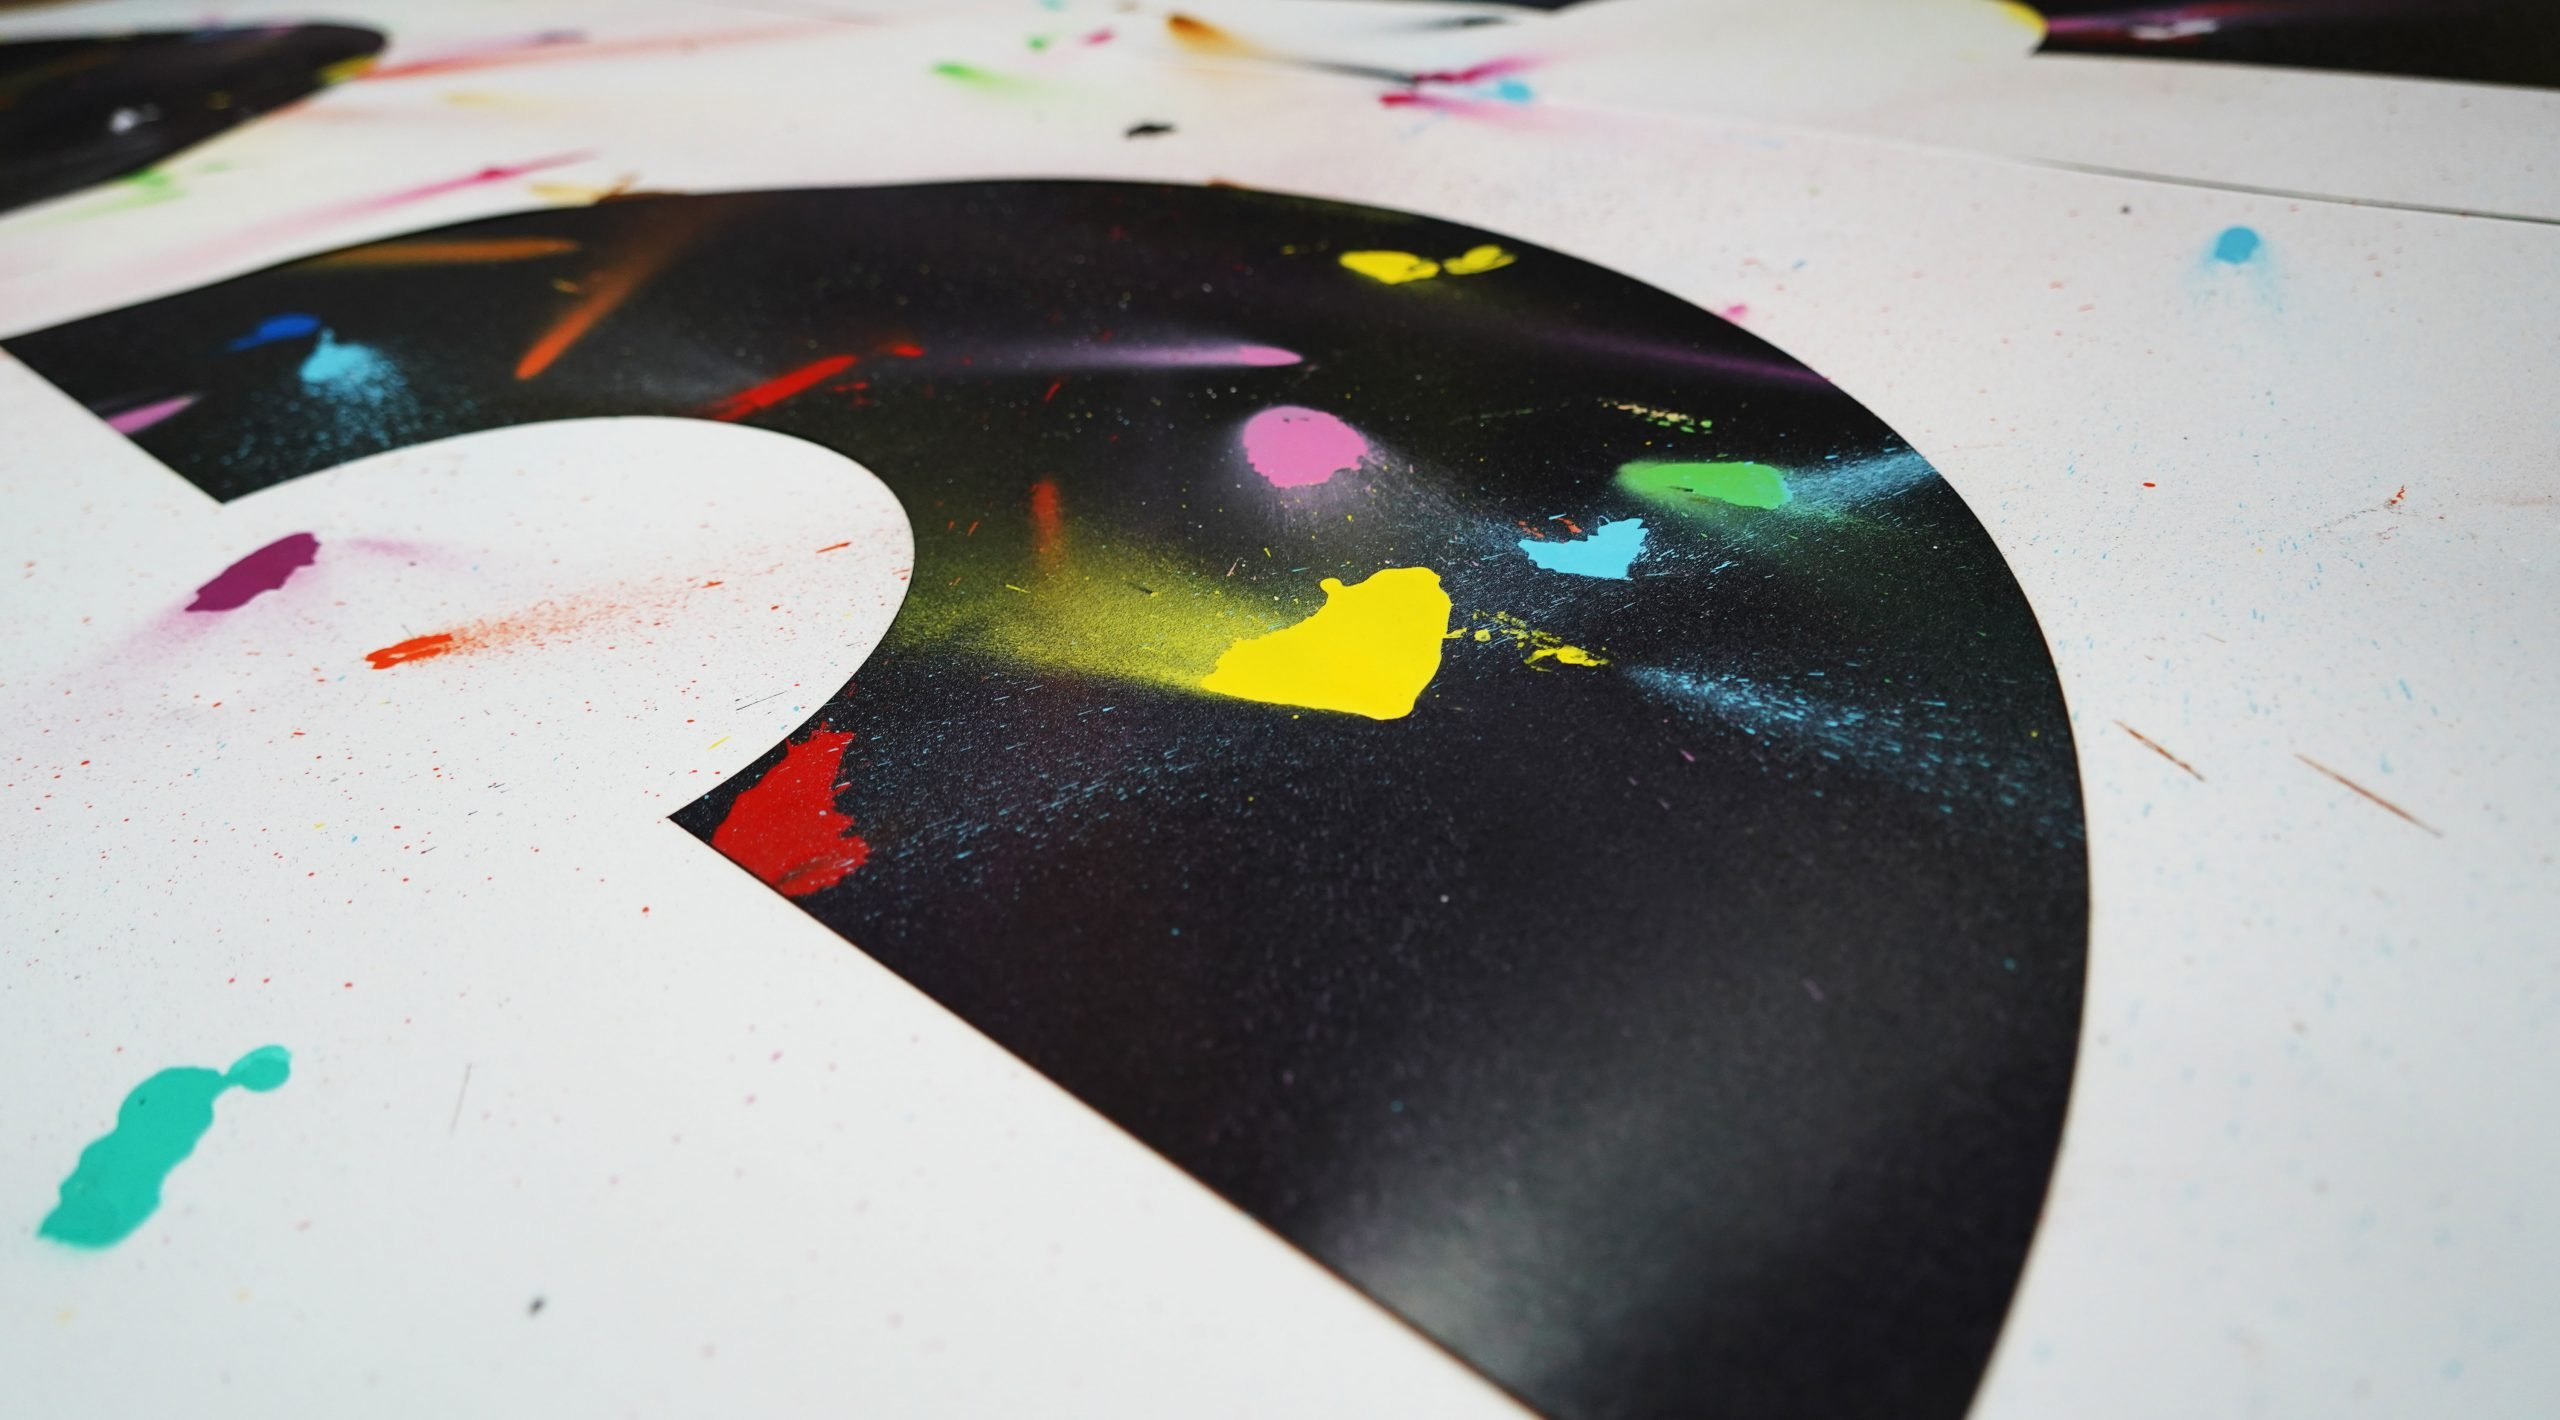 Artwork on white paper with a black crescent shape covered in colourful spray paint